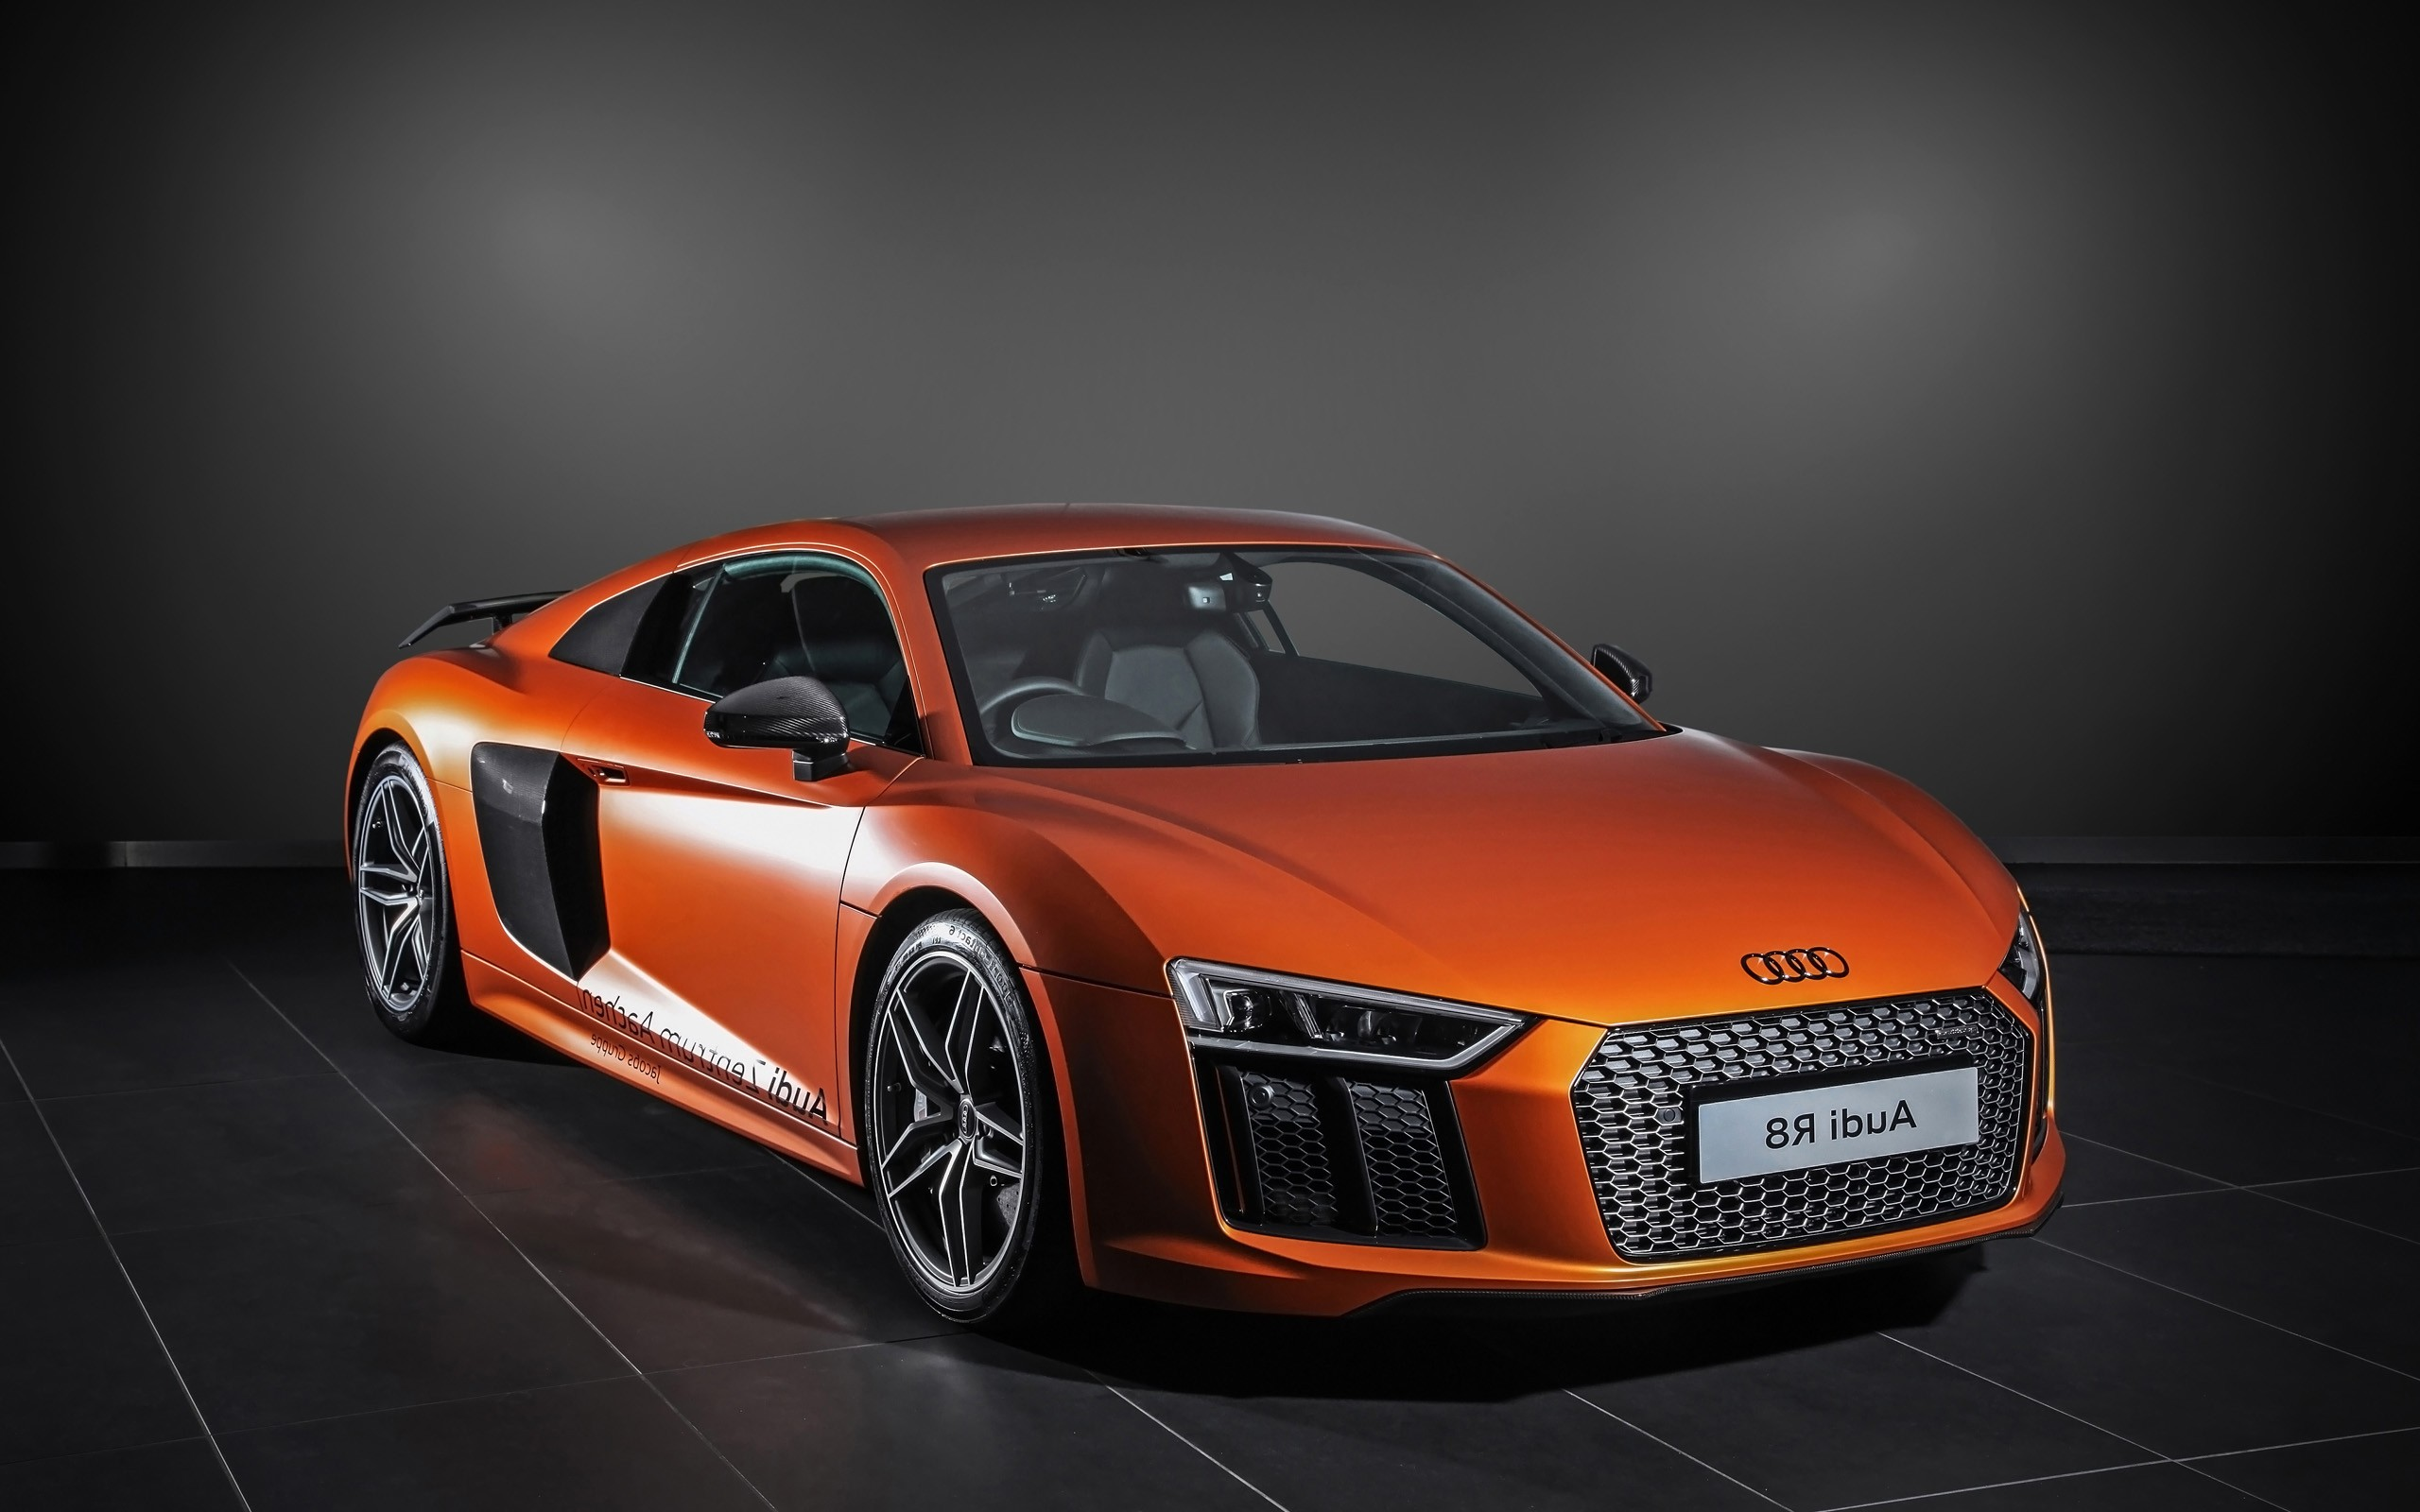 audi r8 v10 tuned custom, hd cars, 4k wallpapers, images